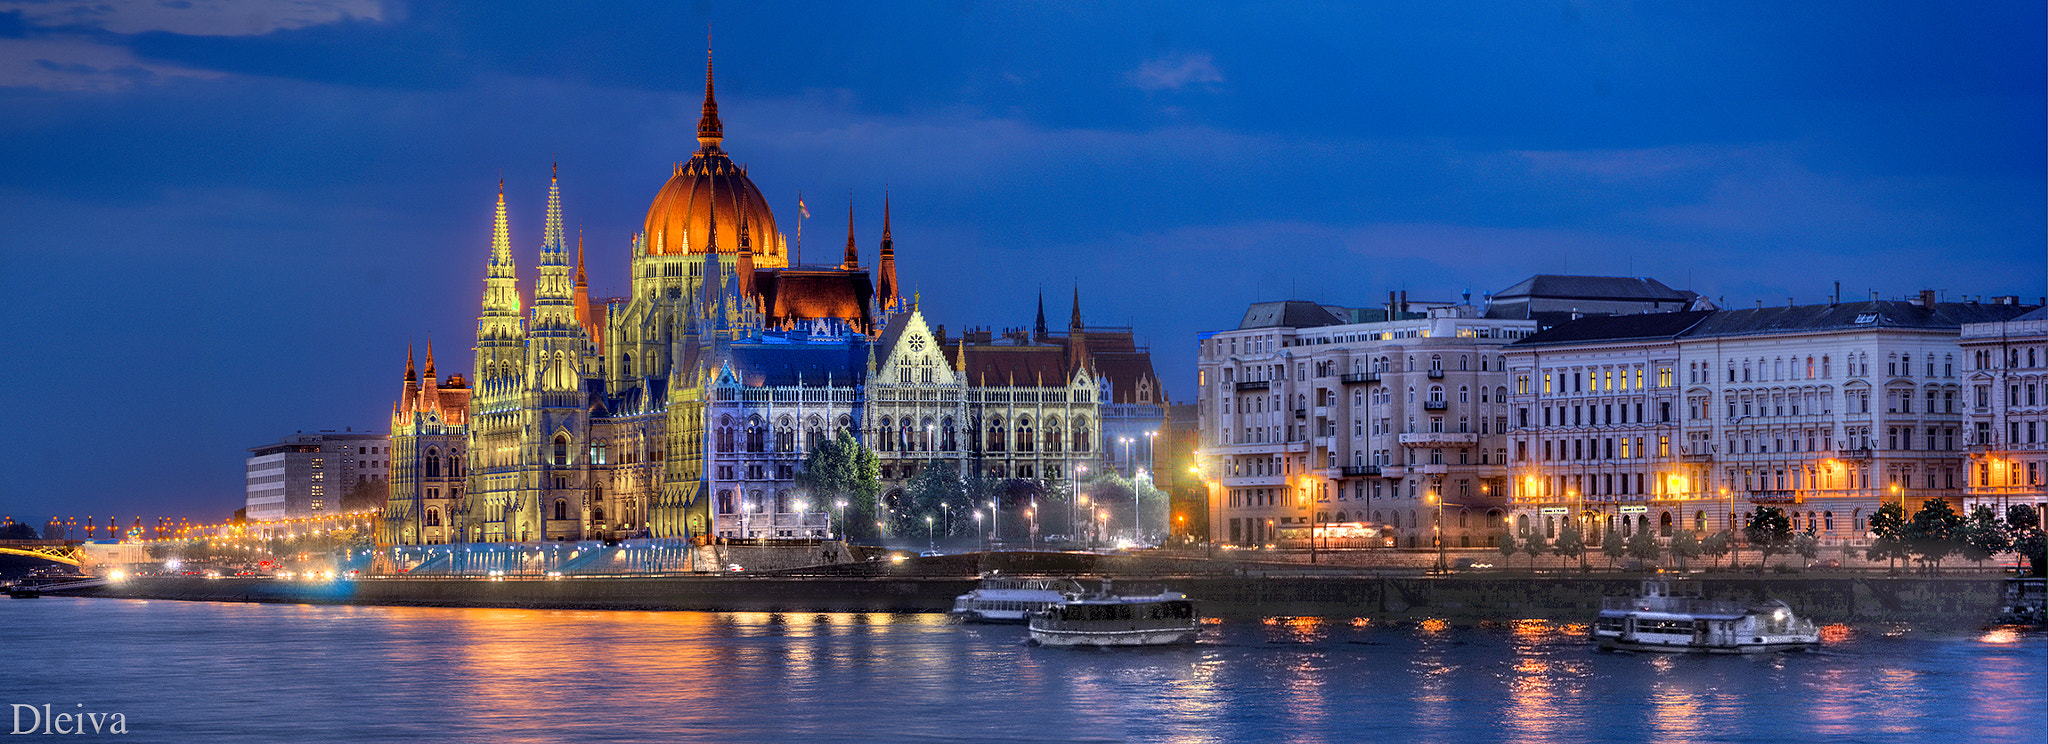 Photograph Parliament of Budapest, Hungary by Domingo Leiva on 500px